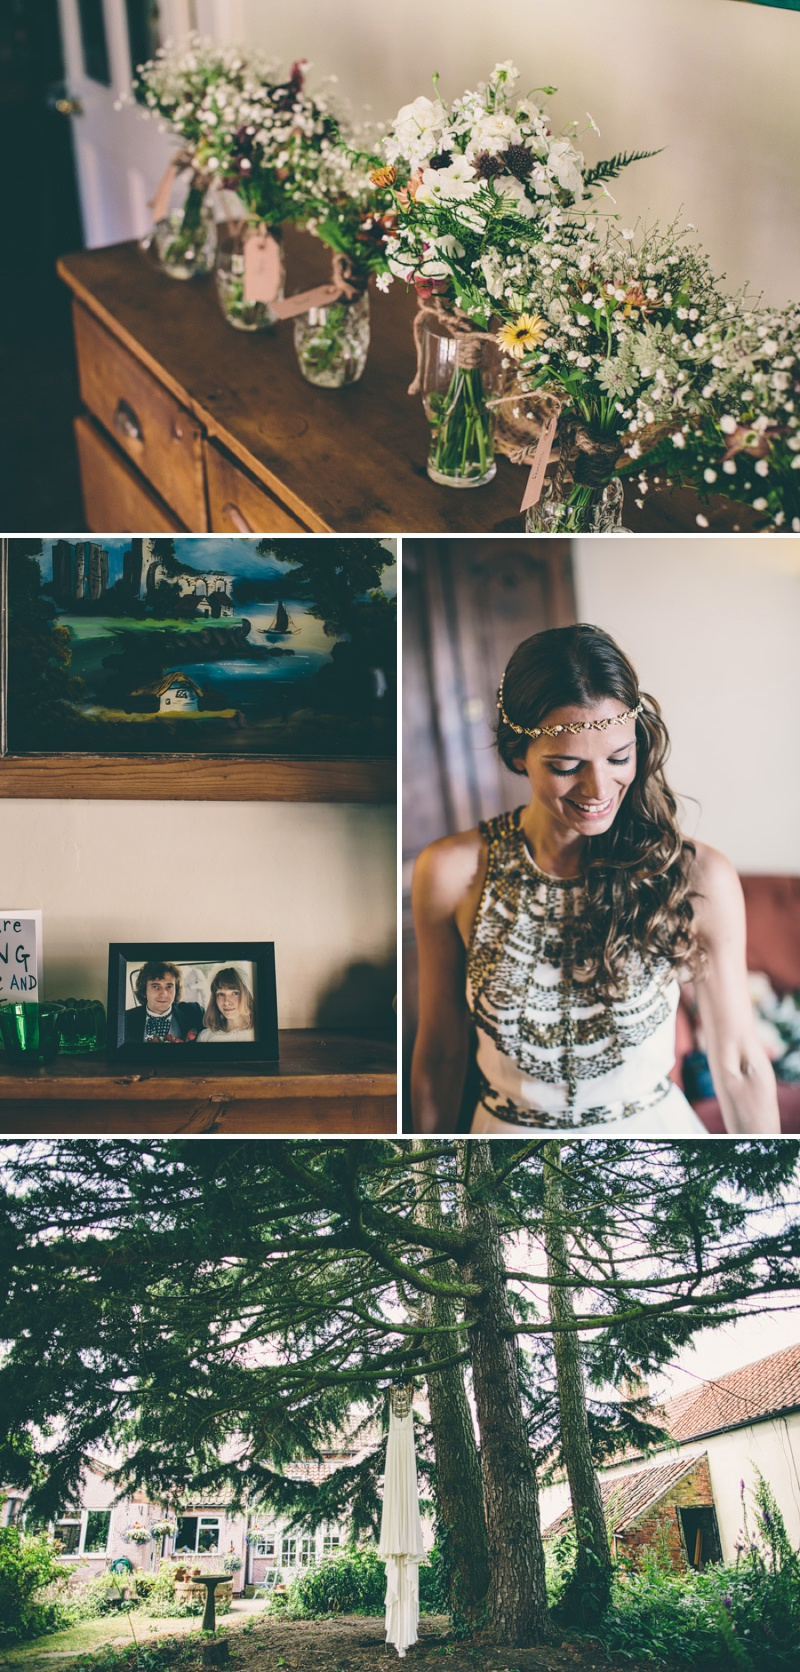 A Maid Marian Festival Inspired Wedding At Glebe Farm With An Amanda Wakeley Cleopatra Dress, Mismatched Bridesmaids And A Vintage Rosie Weisencrantz Headpiece._0004